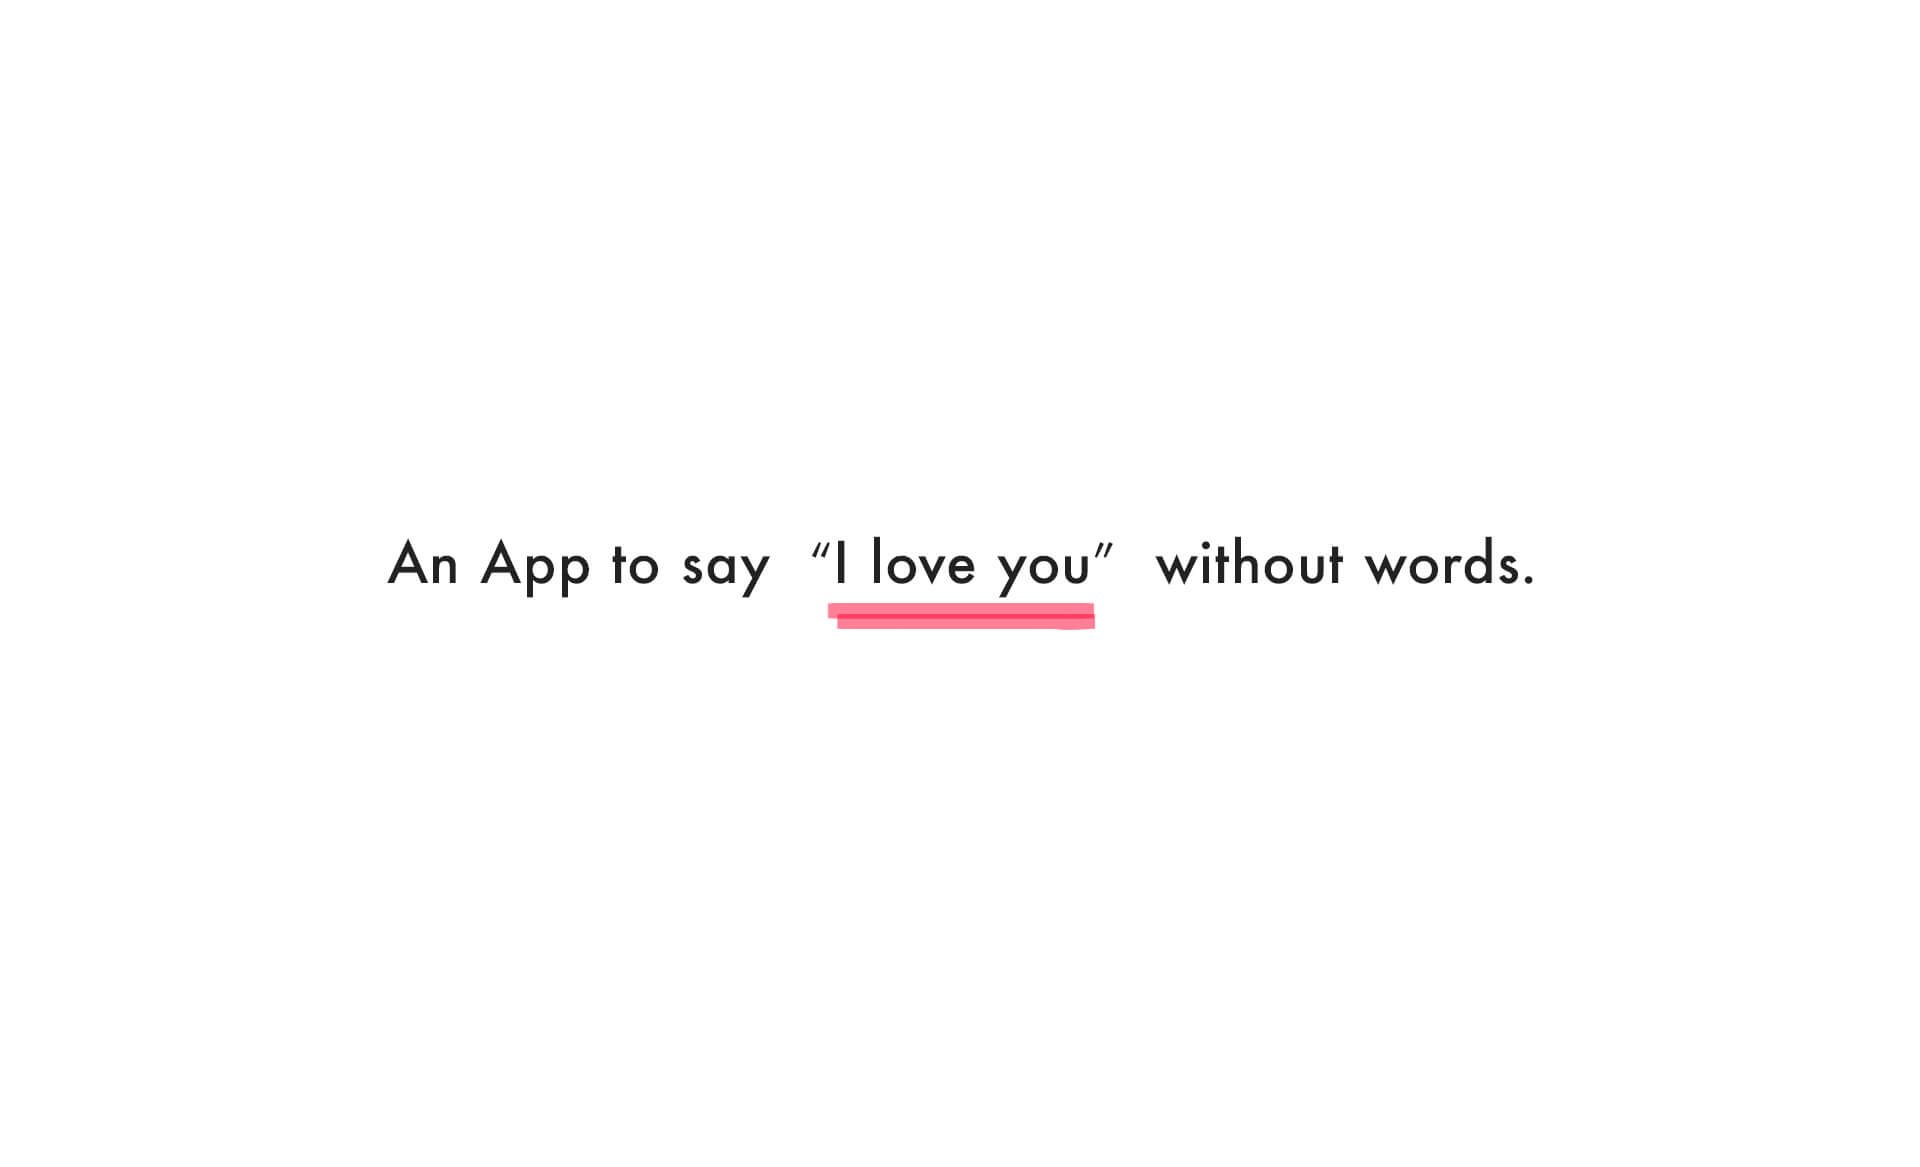 An App to say